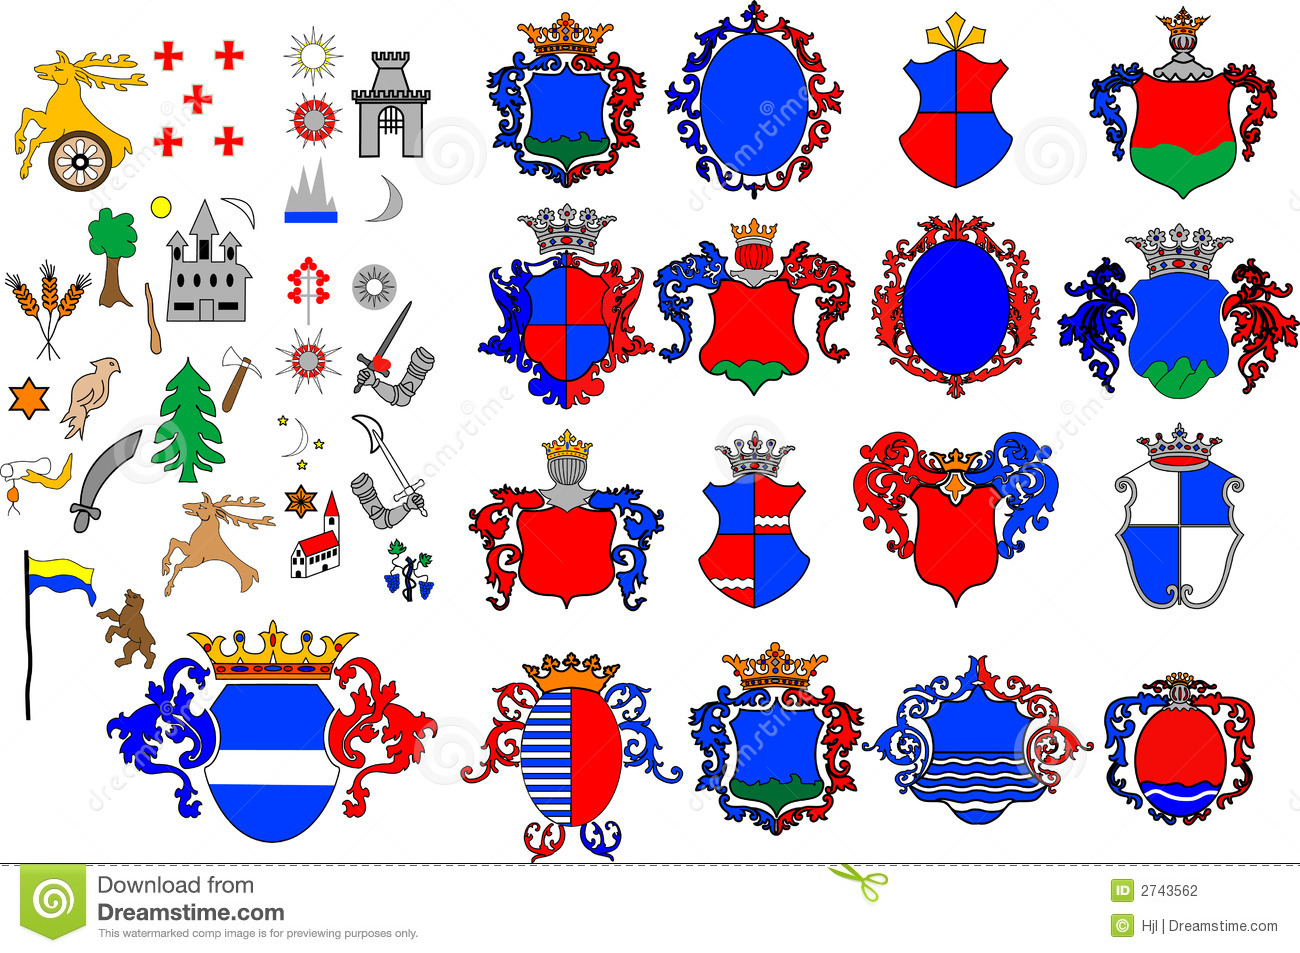 Crest collection